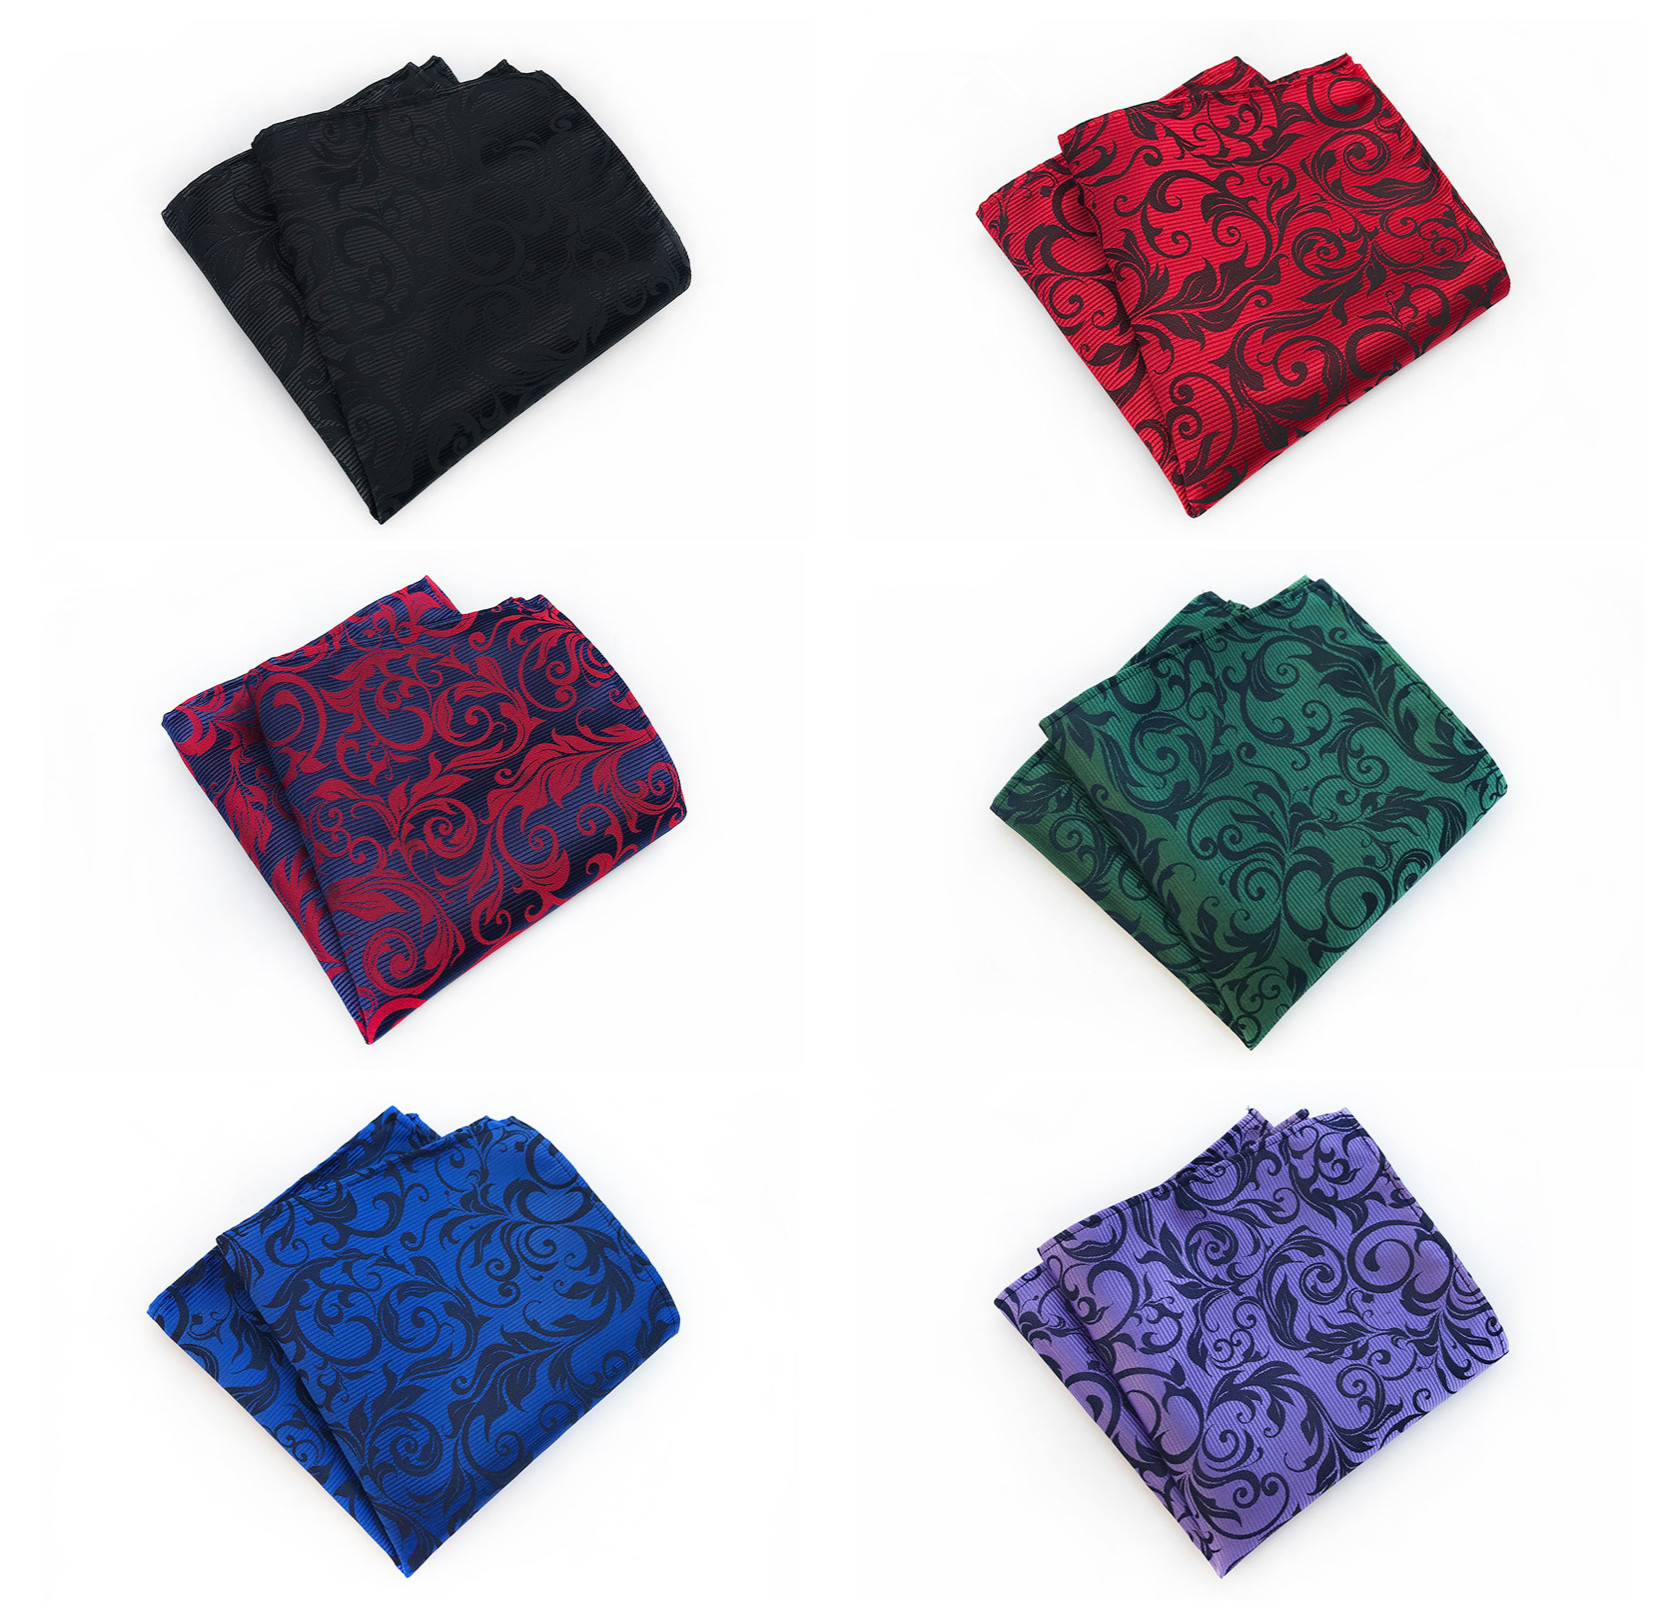 Fashion Boutique Flower Men's Pocket Square Towel Handkerchief Fashion Retro Quality Silk Polyester Paisley Floral Pocket Square